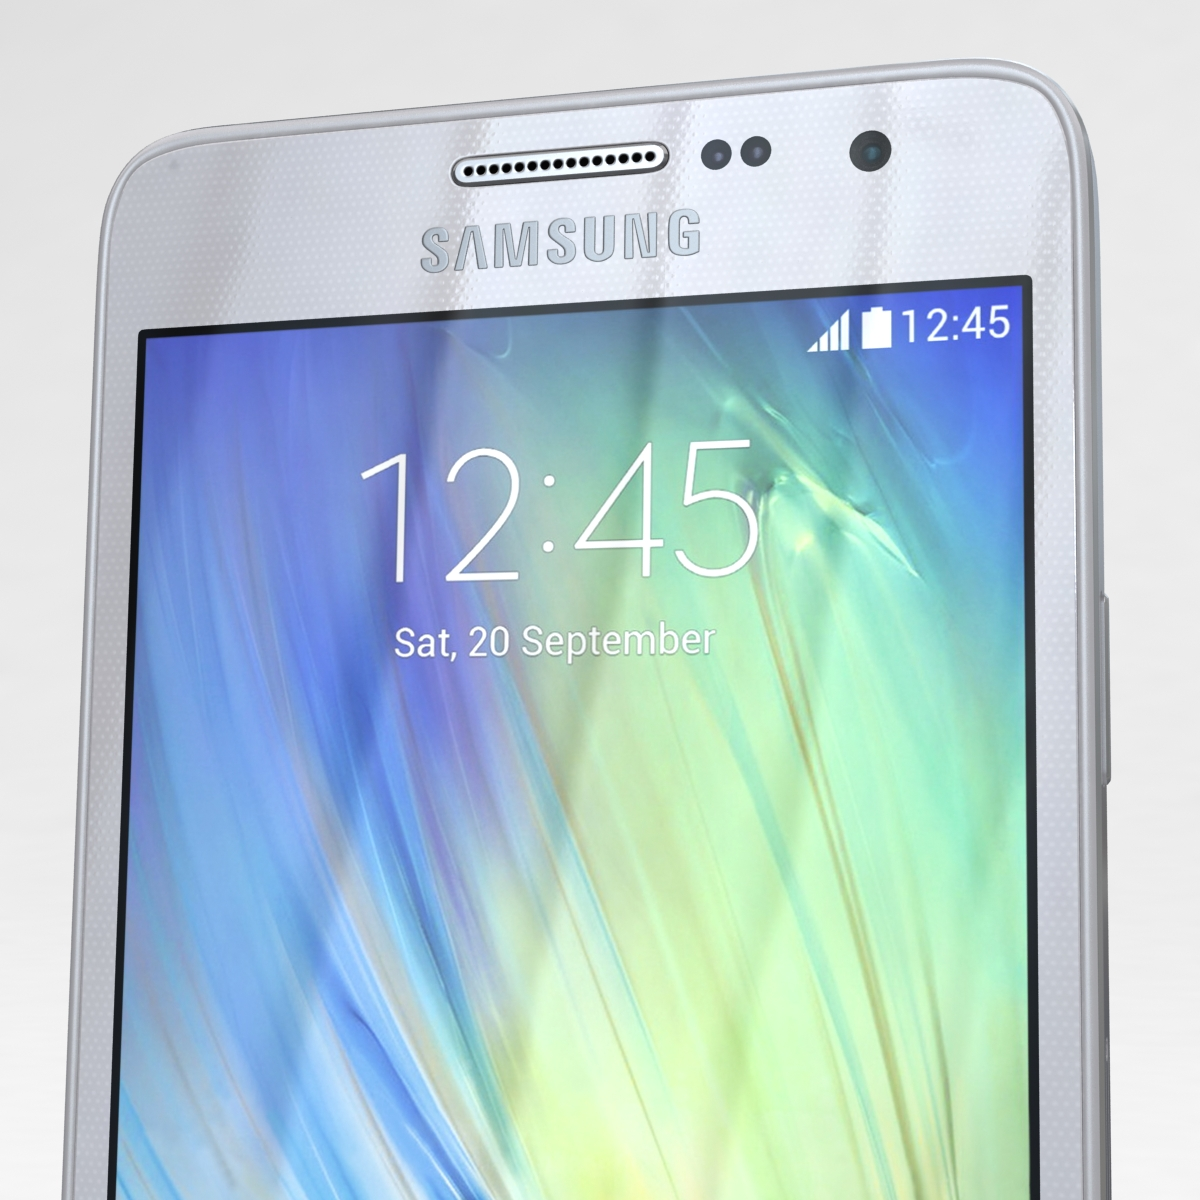 samsung galaxy a3 and a3 duos silver 3d model 3ds max fbx c4d obj 208323